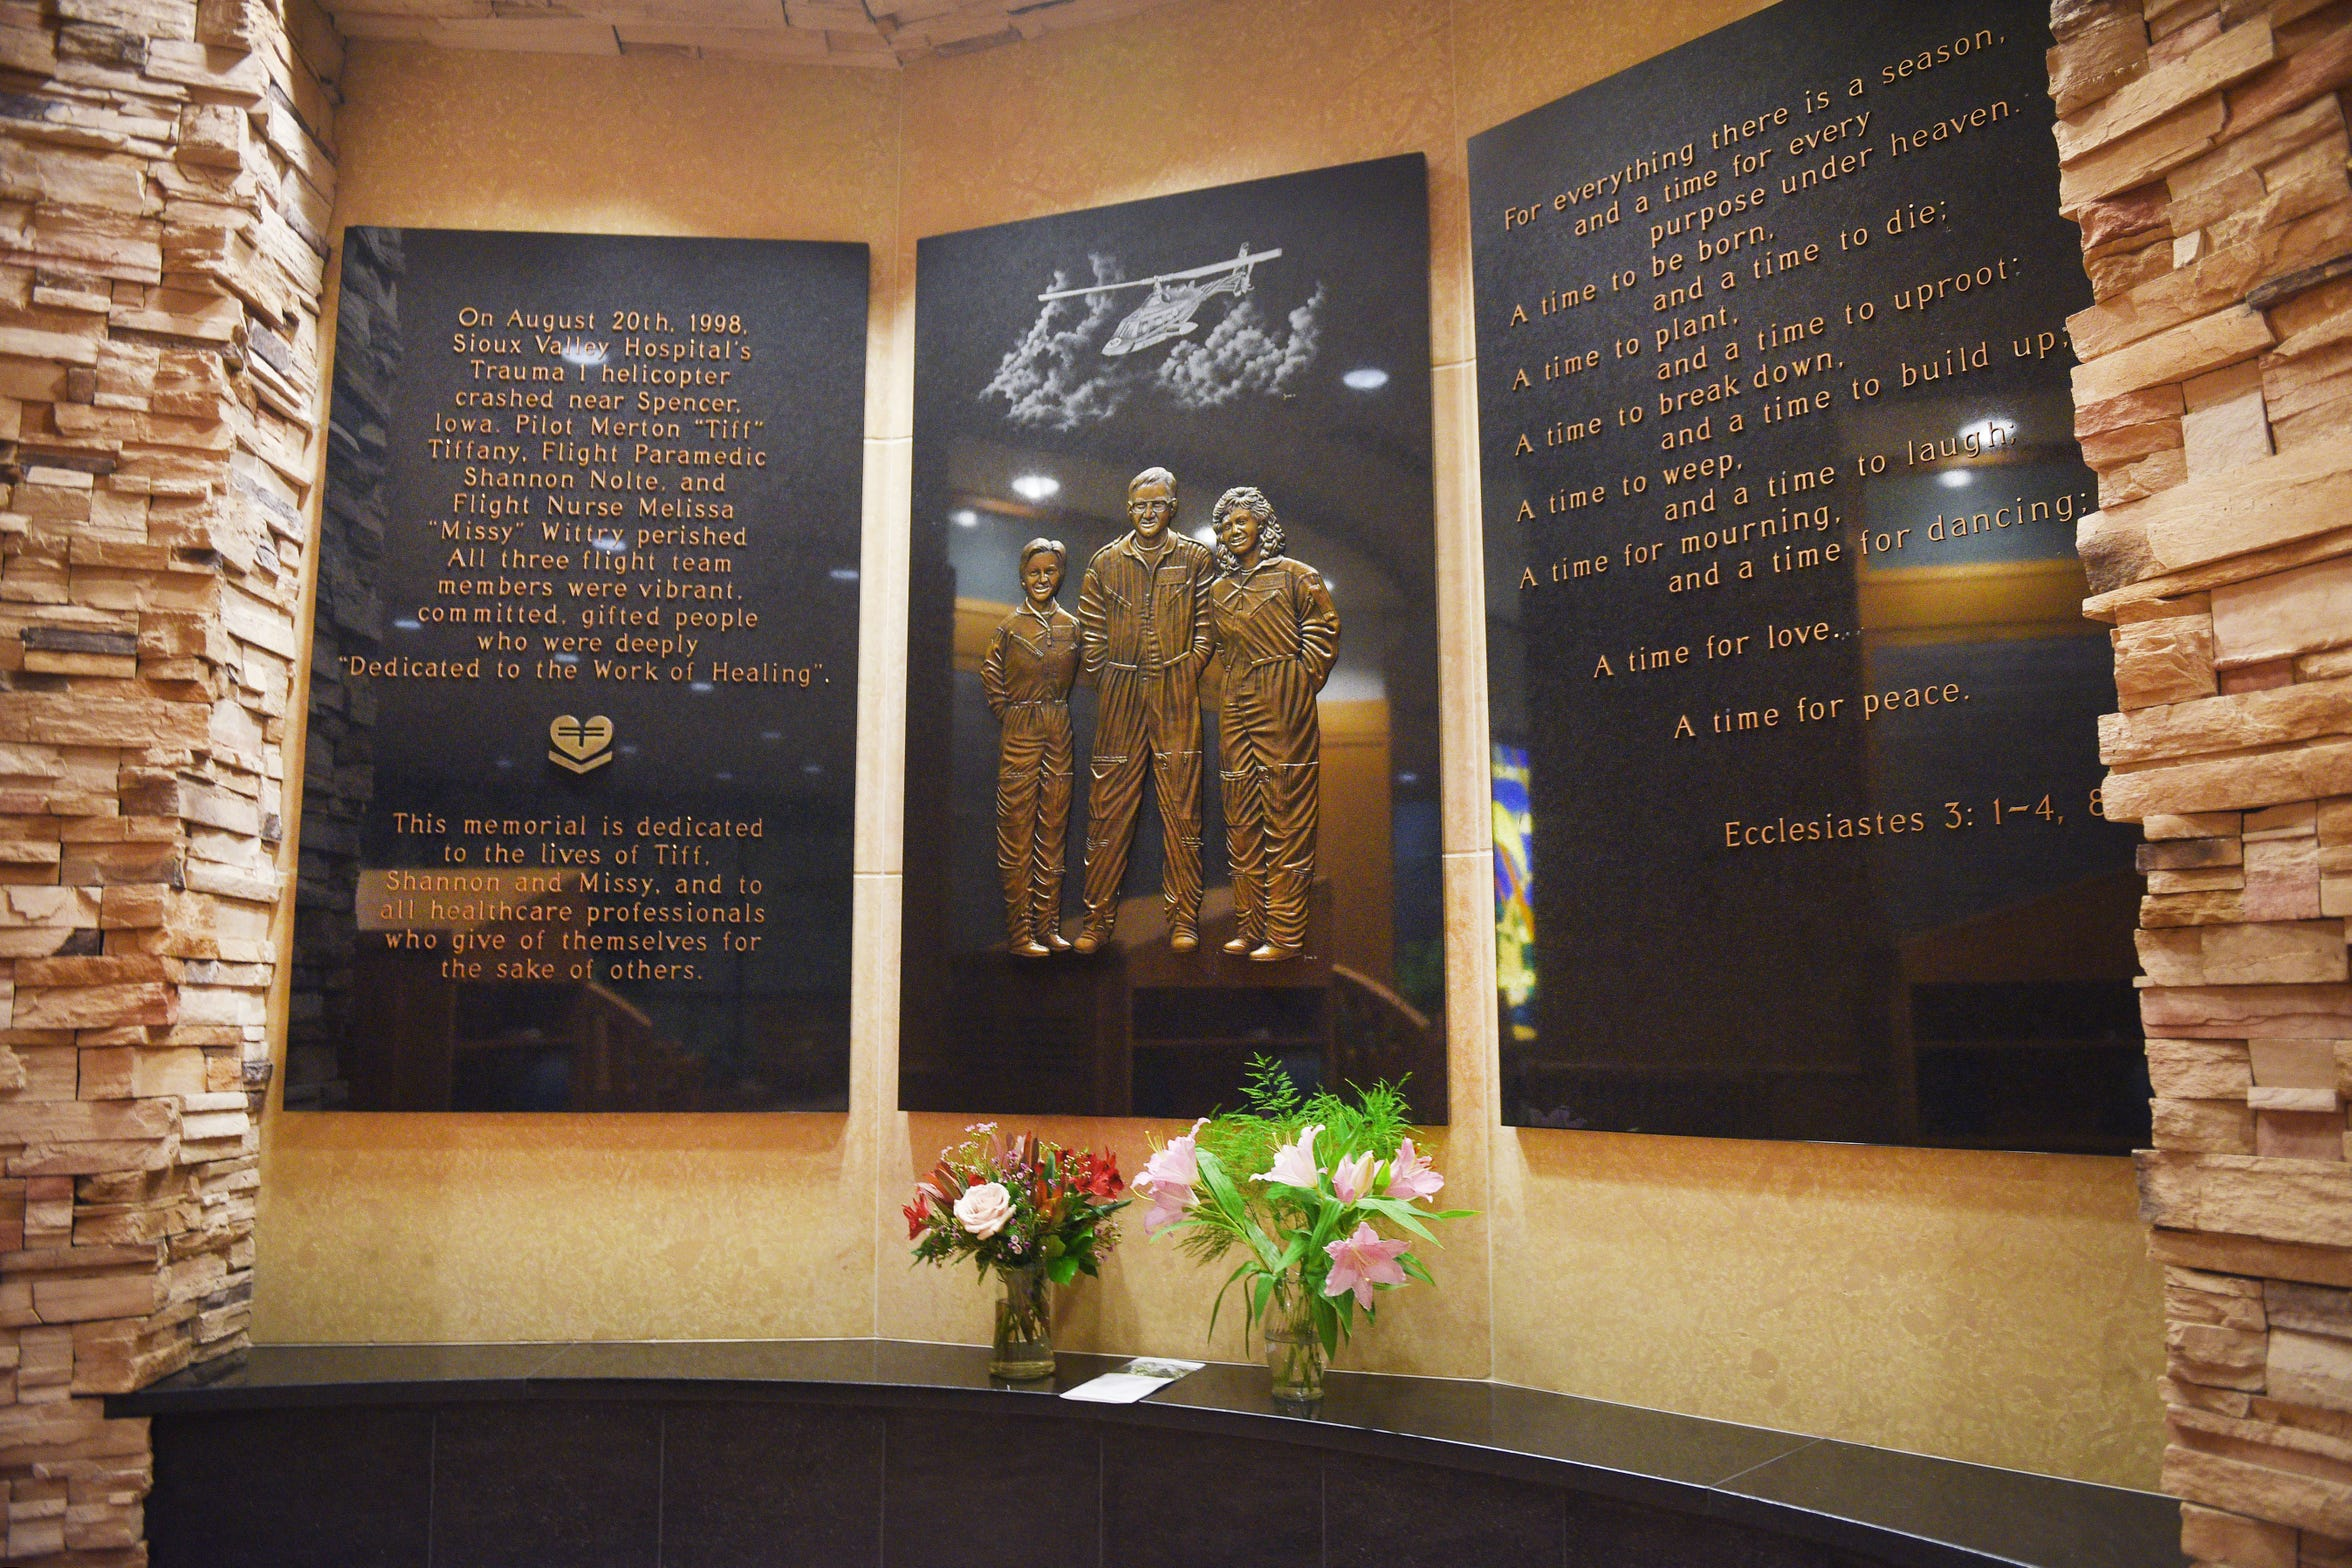 The Sanford Memorial Garden in Sioux Falls is dedicated to the three crew members who were killed in a 1998 helicopter ambulance crash.